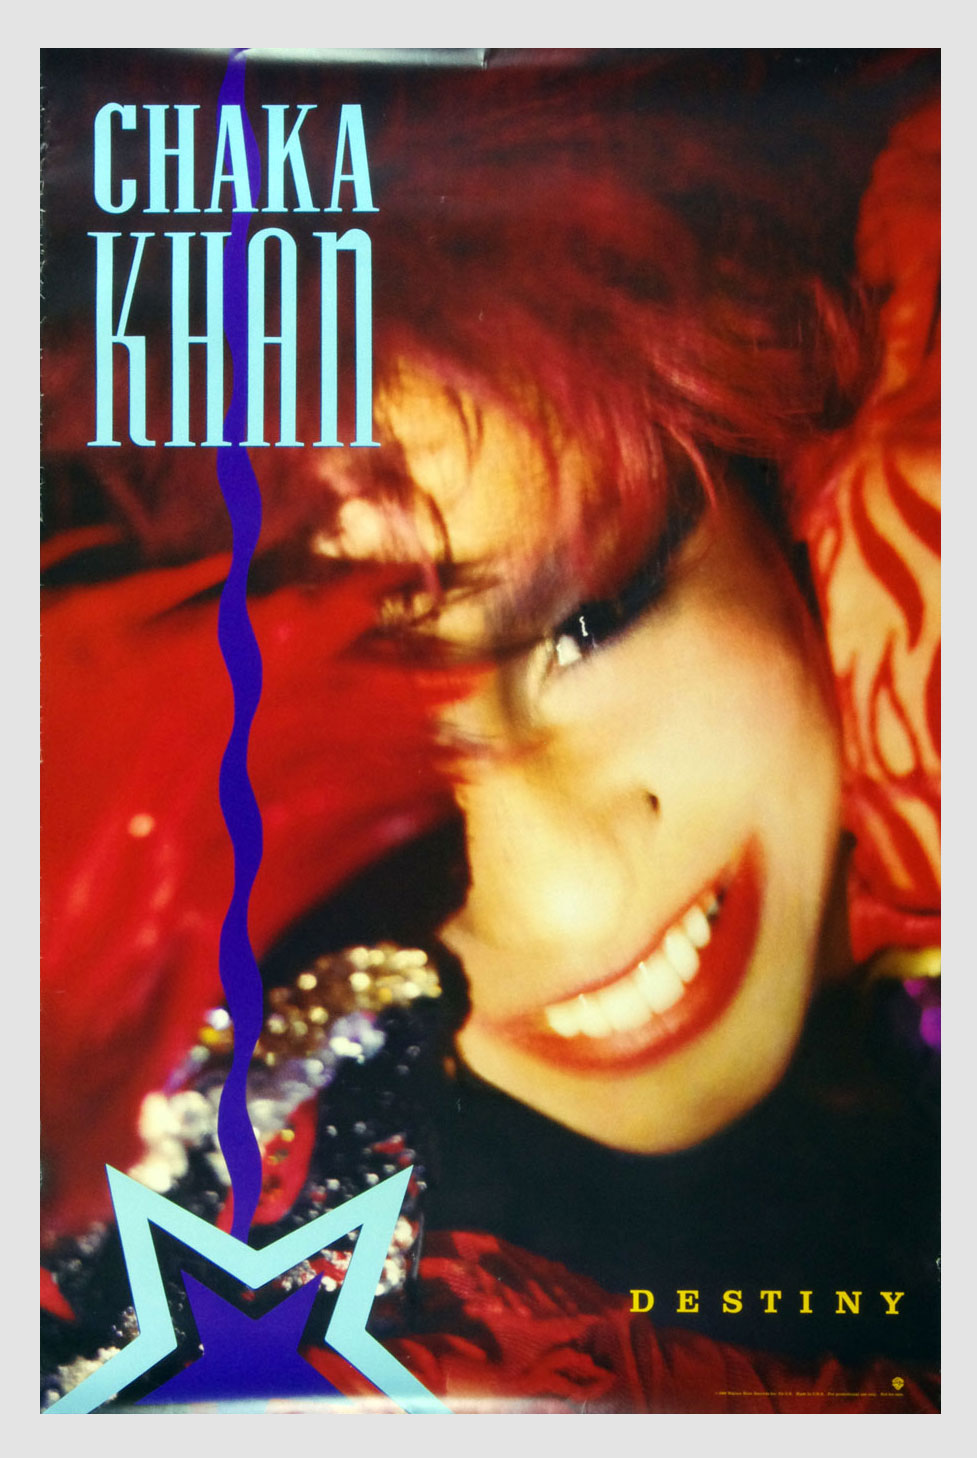 Chaka Khan Poster Destiny 1986 New Album Promo 23 x 35